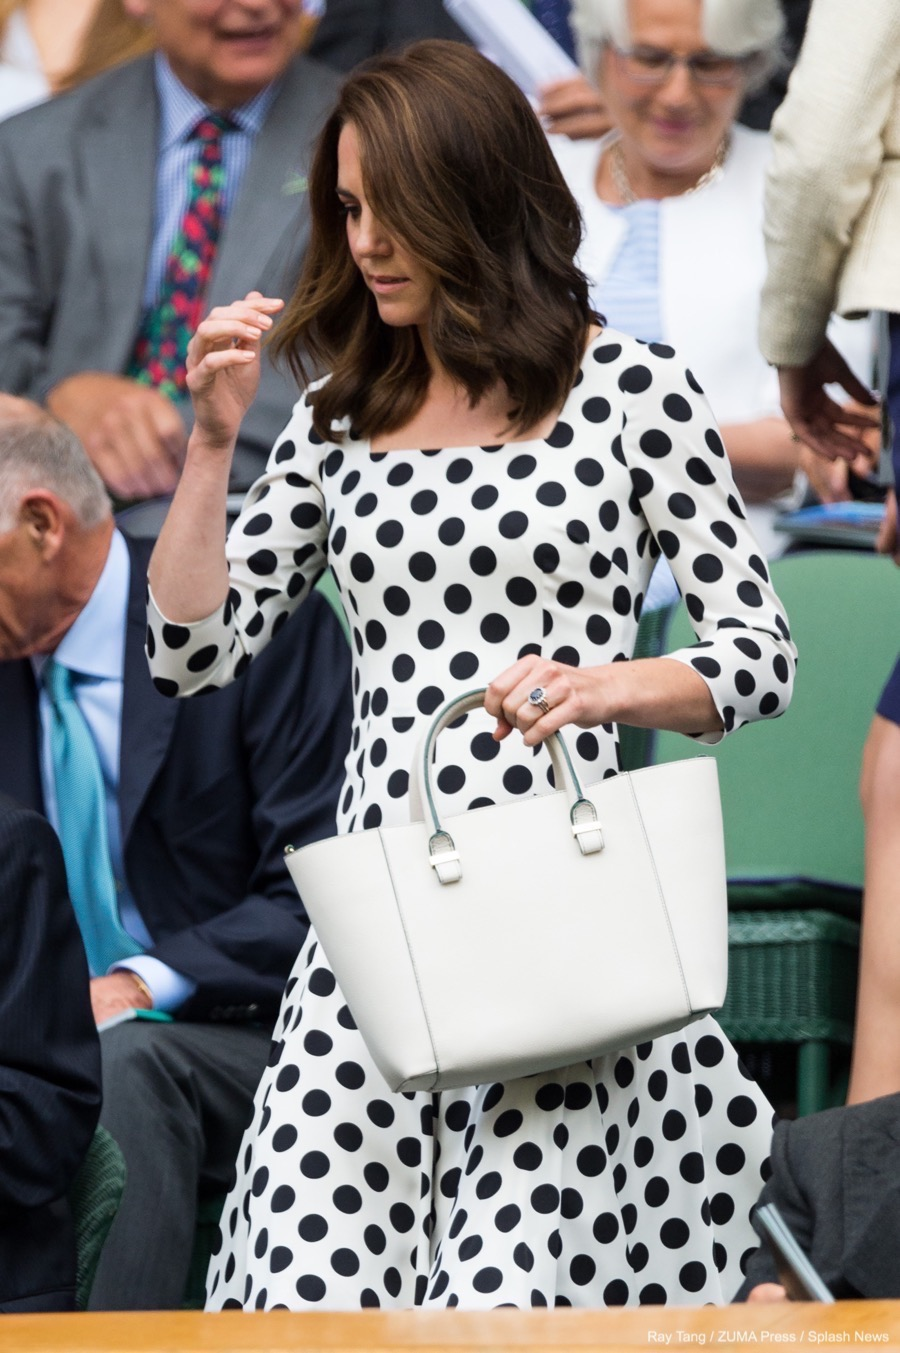 Kate Middleton carrying the Victoria Beckham Quincy bag